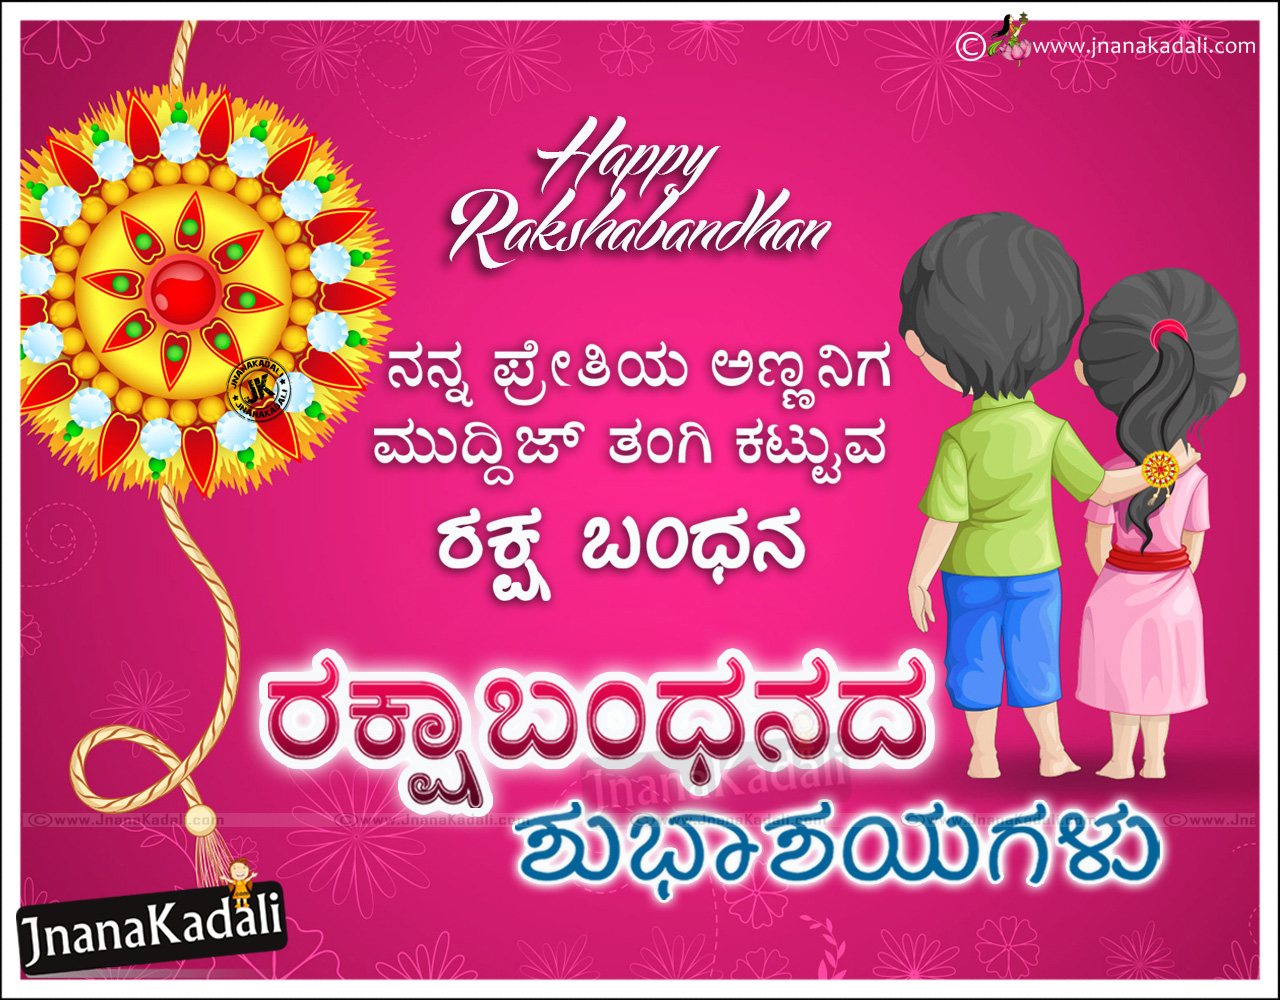 Kannada Nice Raksha Bandhan Quotations Wallpapers and